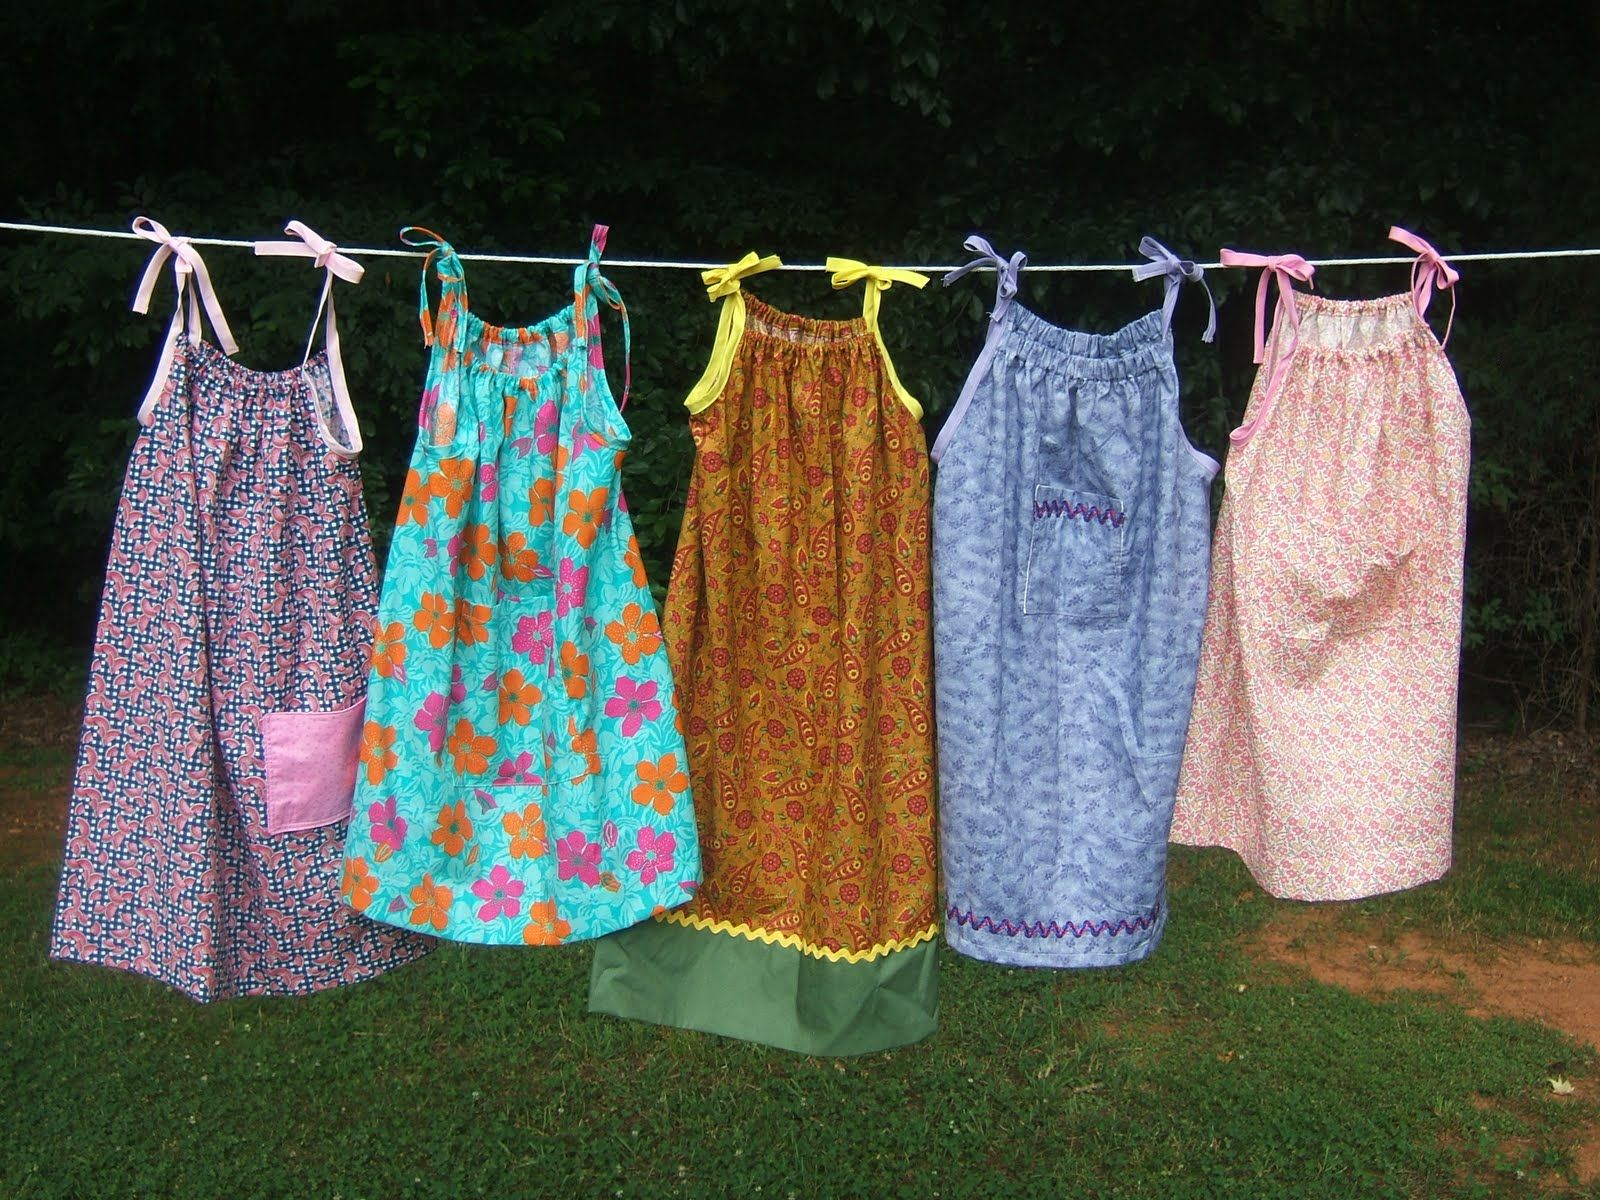 Pillowcase Dresses For Africa Mesmerizing Humanitarian Helpers Pillowcase Dresses For Africa  Girls Camp Design Inspiration